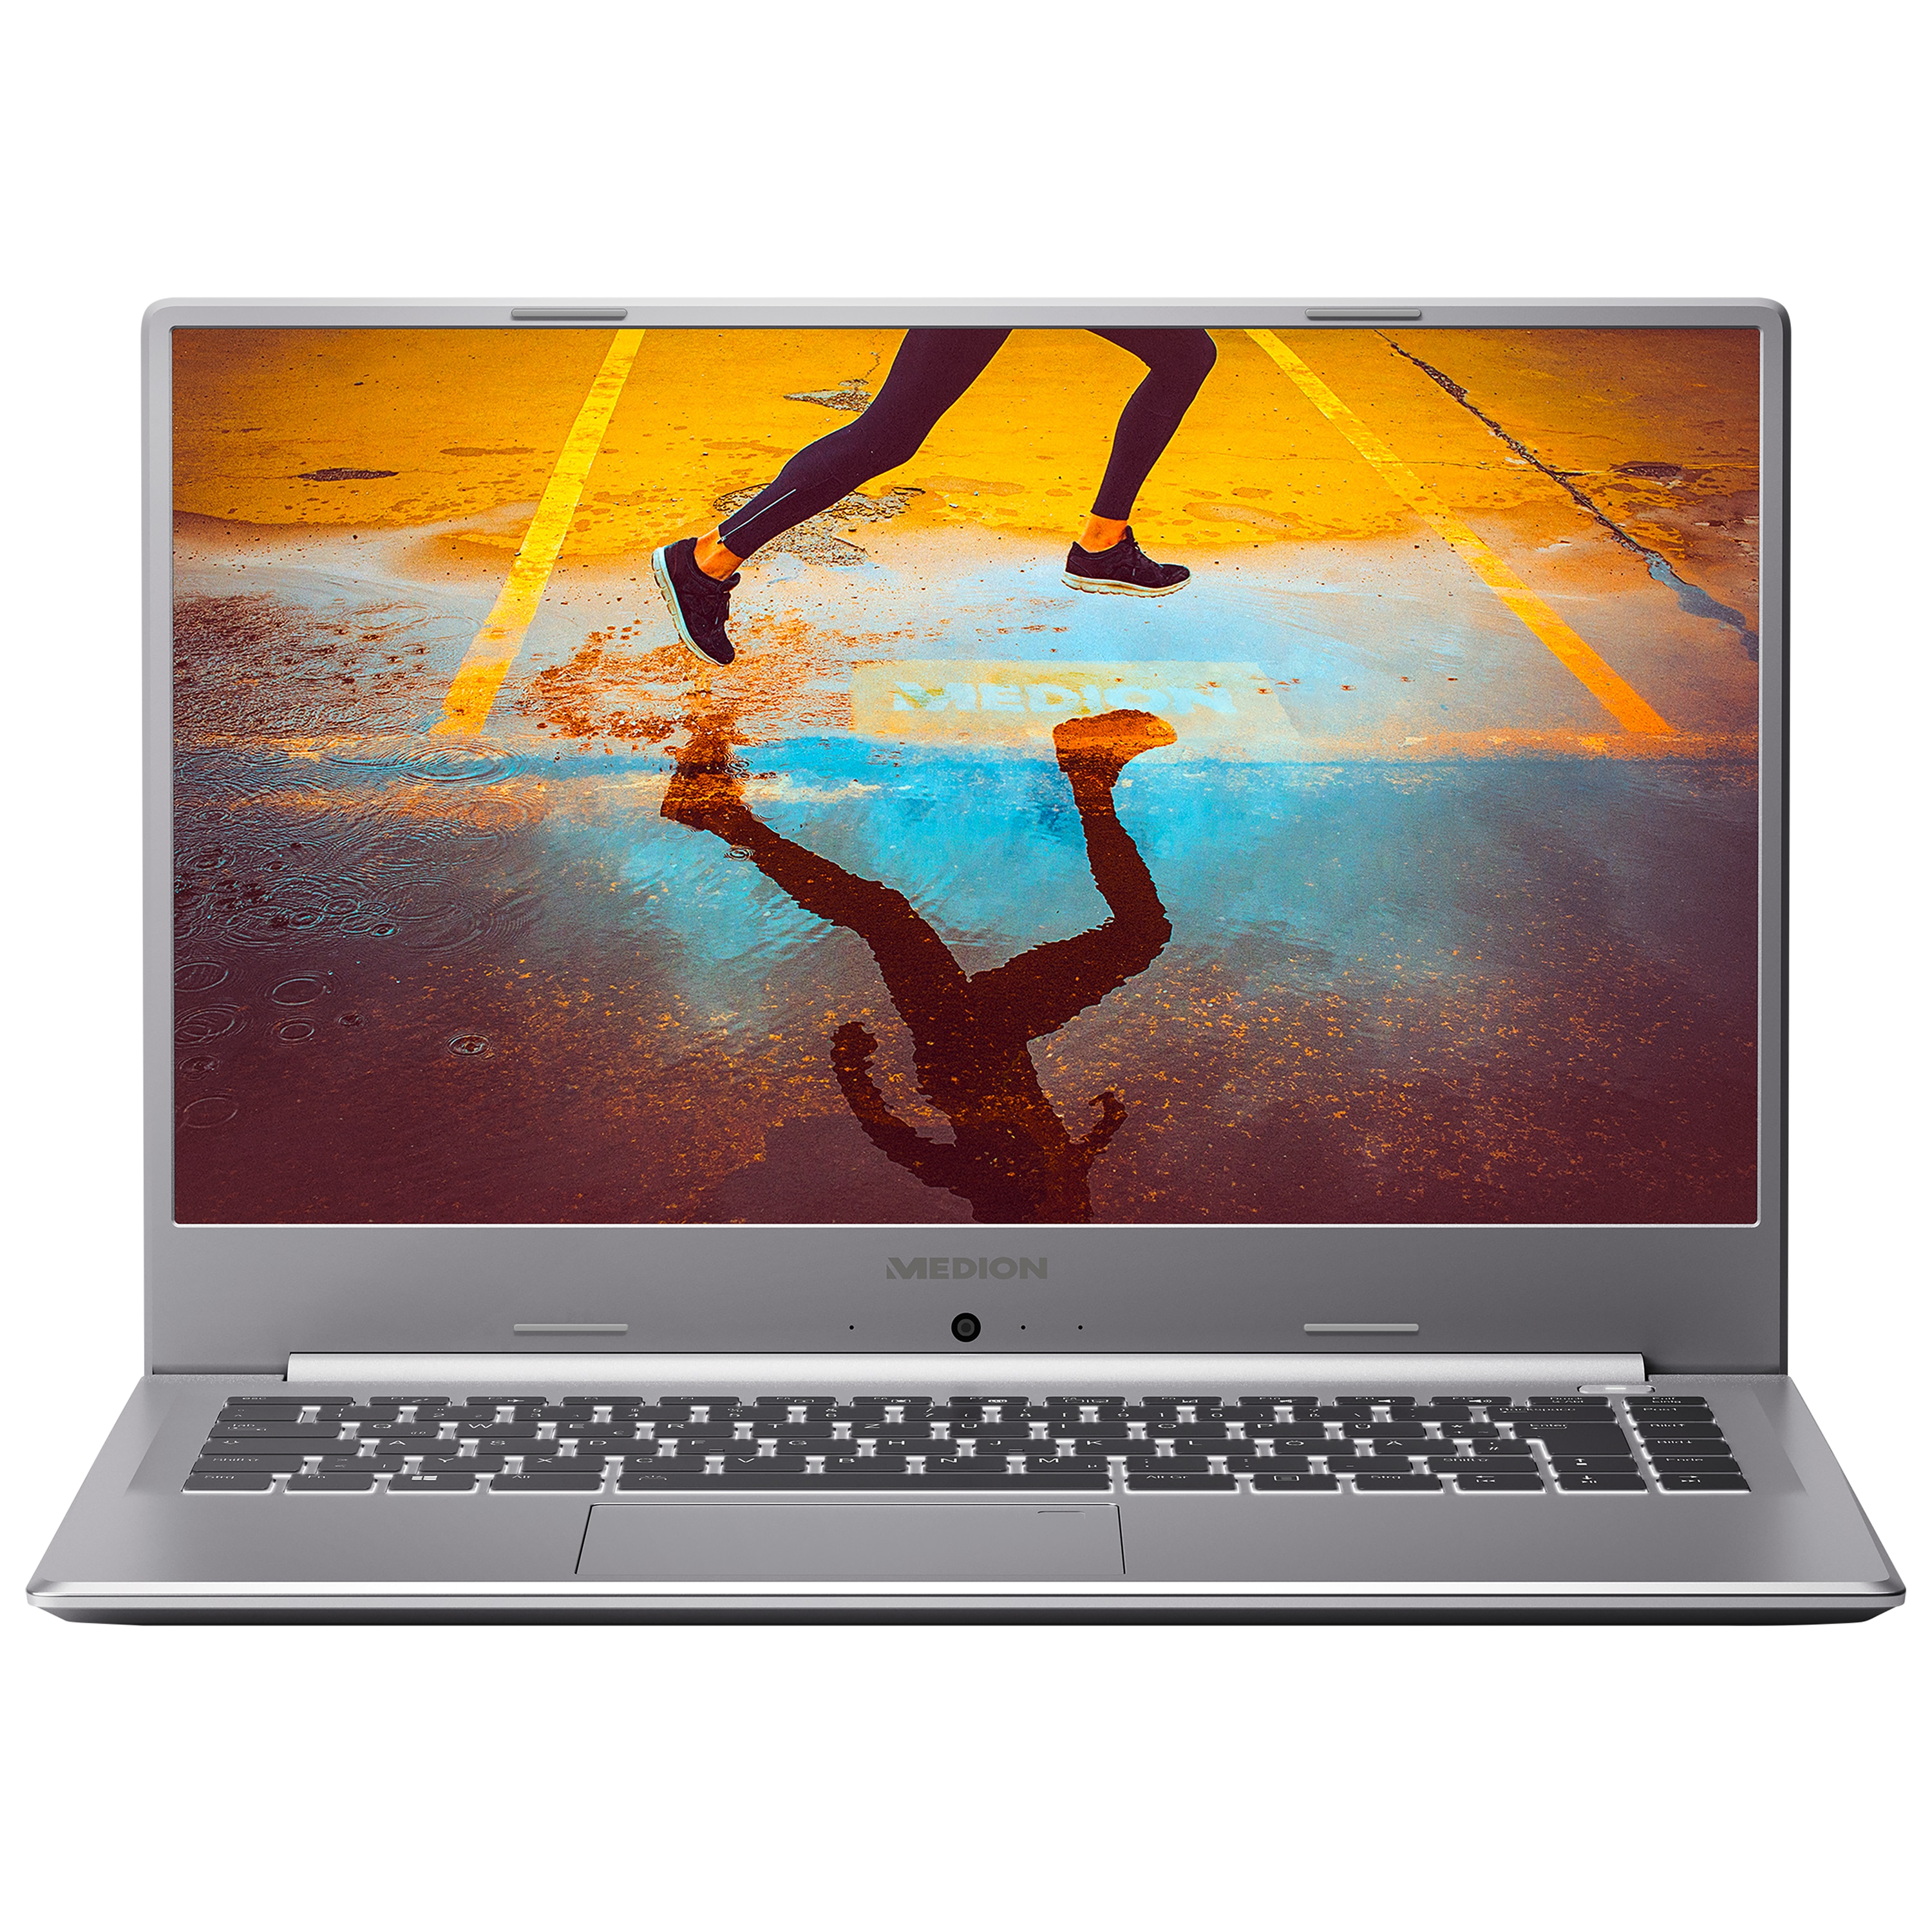 MEDION® AKOYA S15447 Portable Performance | Intel Core i5 | Windows 10 Famille | Ultra HD Graphics | 15,6 pouces Full HD | 8 Go RAM | 256 Go SSD